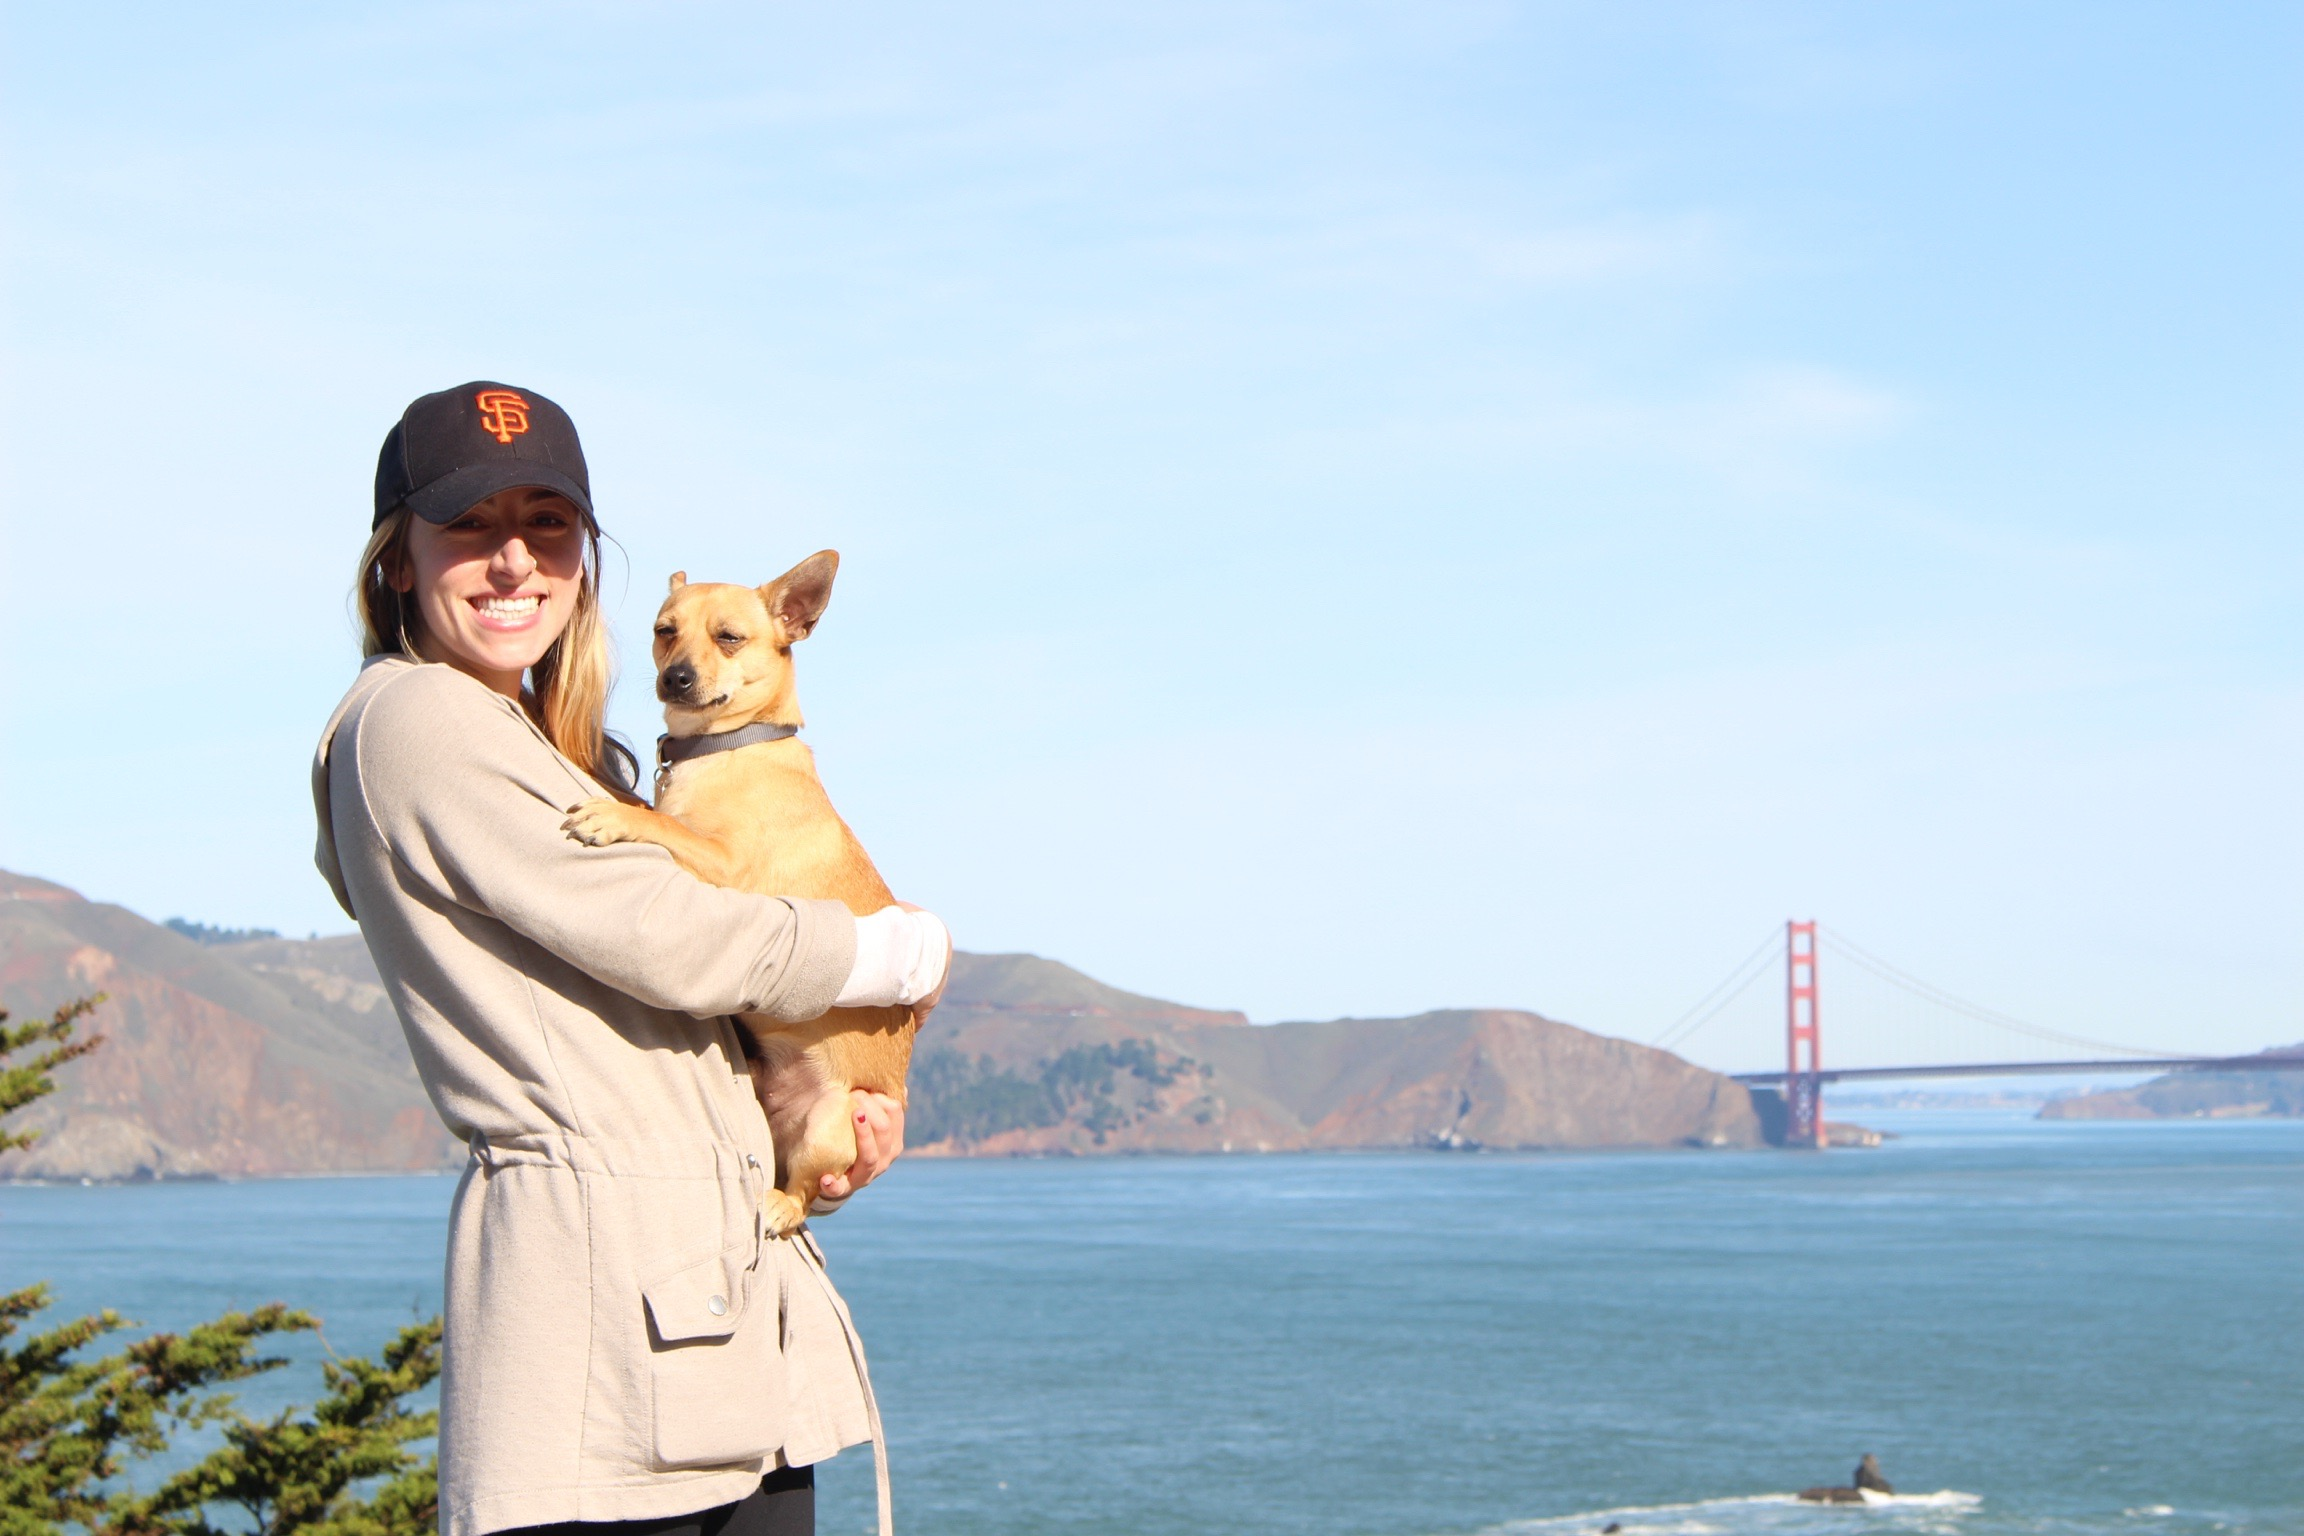 Hiking Land's End with my family. It was the perfect day with clear skies to see the Golden Gate Bridge. (November, 2016)